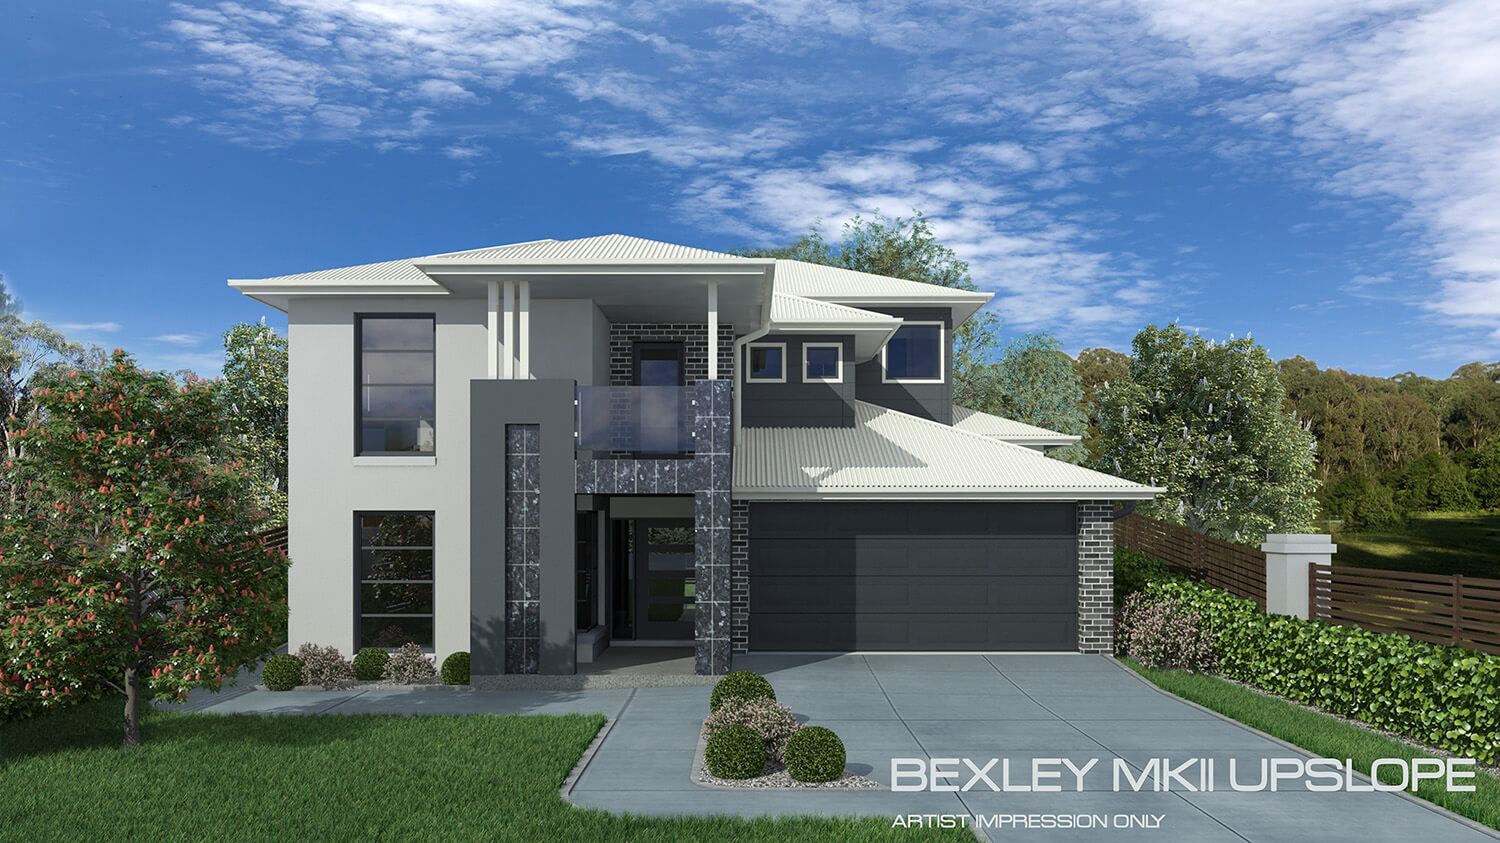 Bexley mkii upslope home design tullipan homes for Up slope house plans